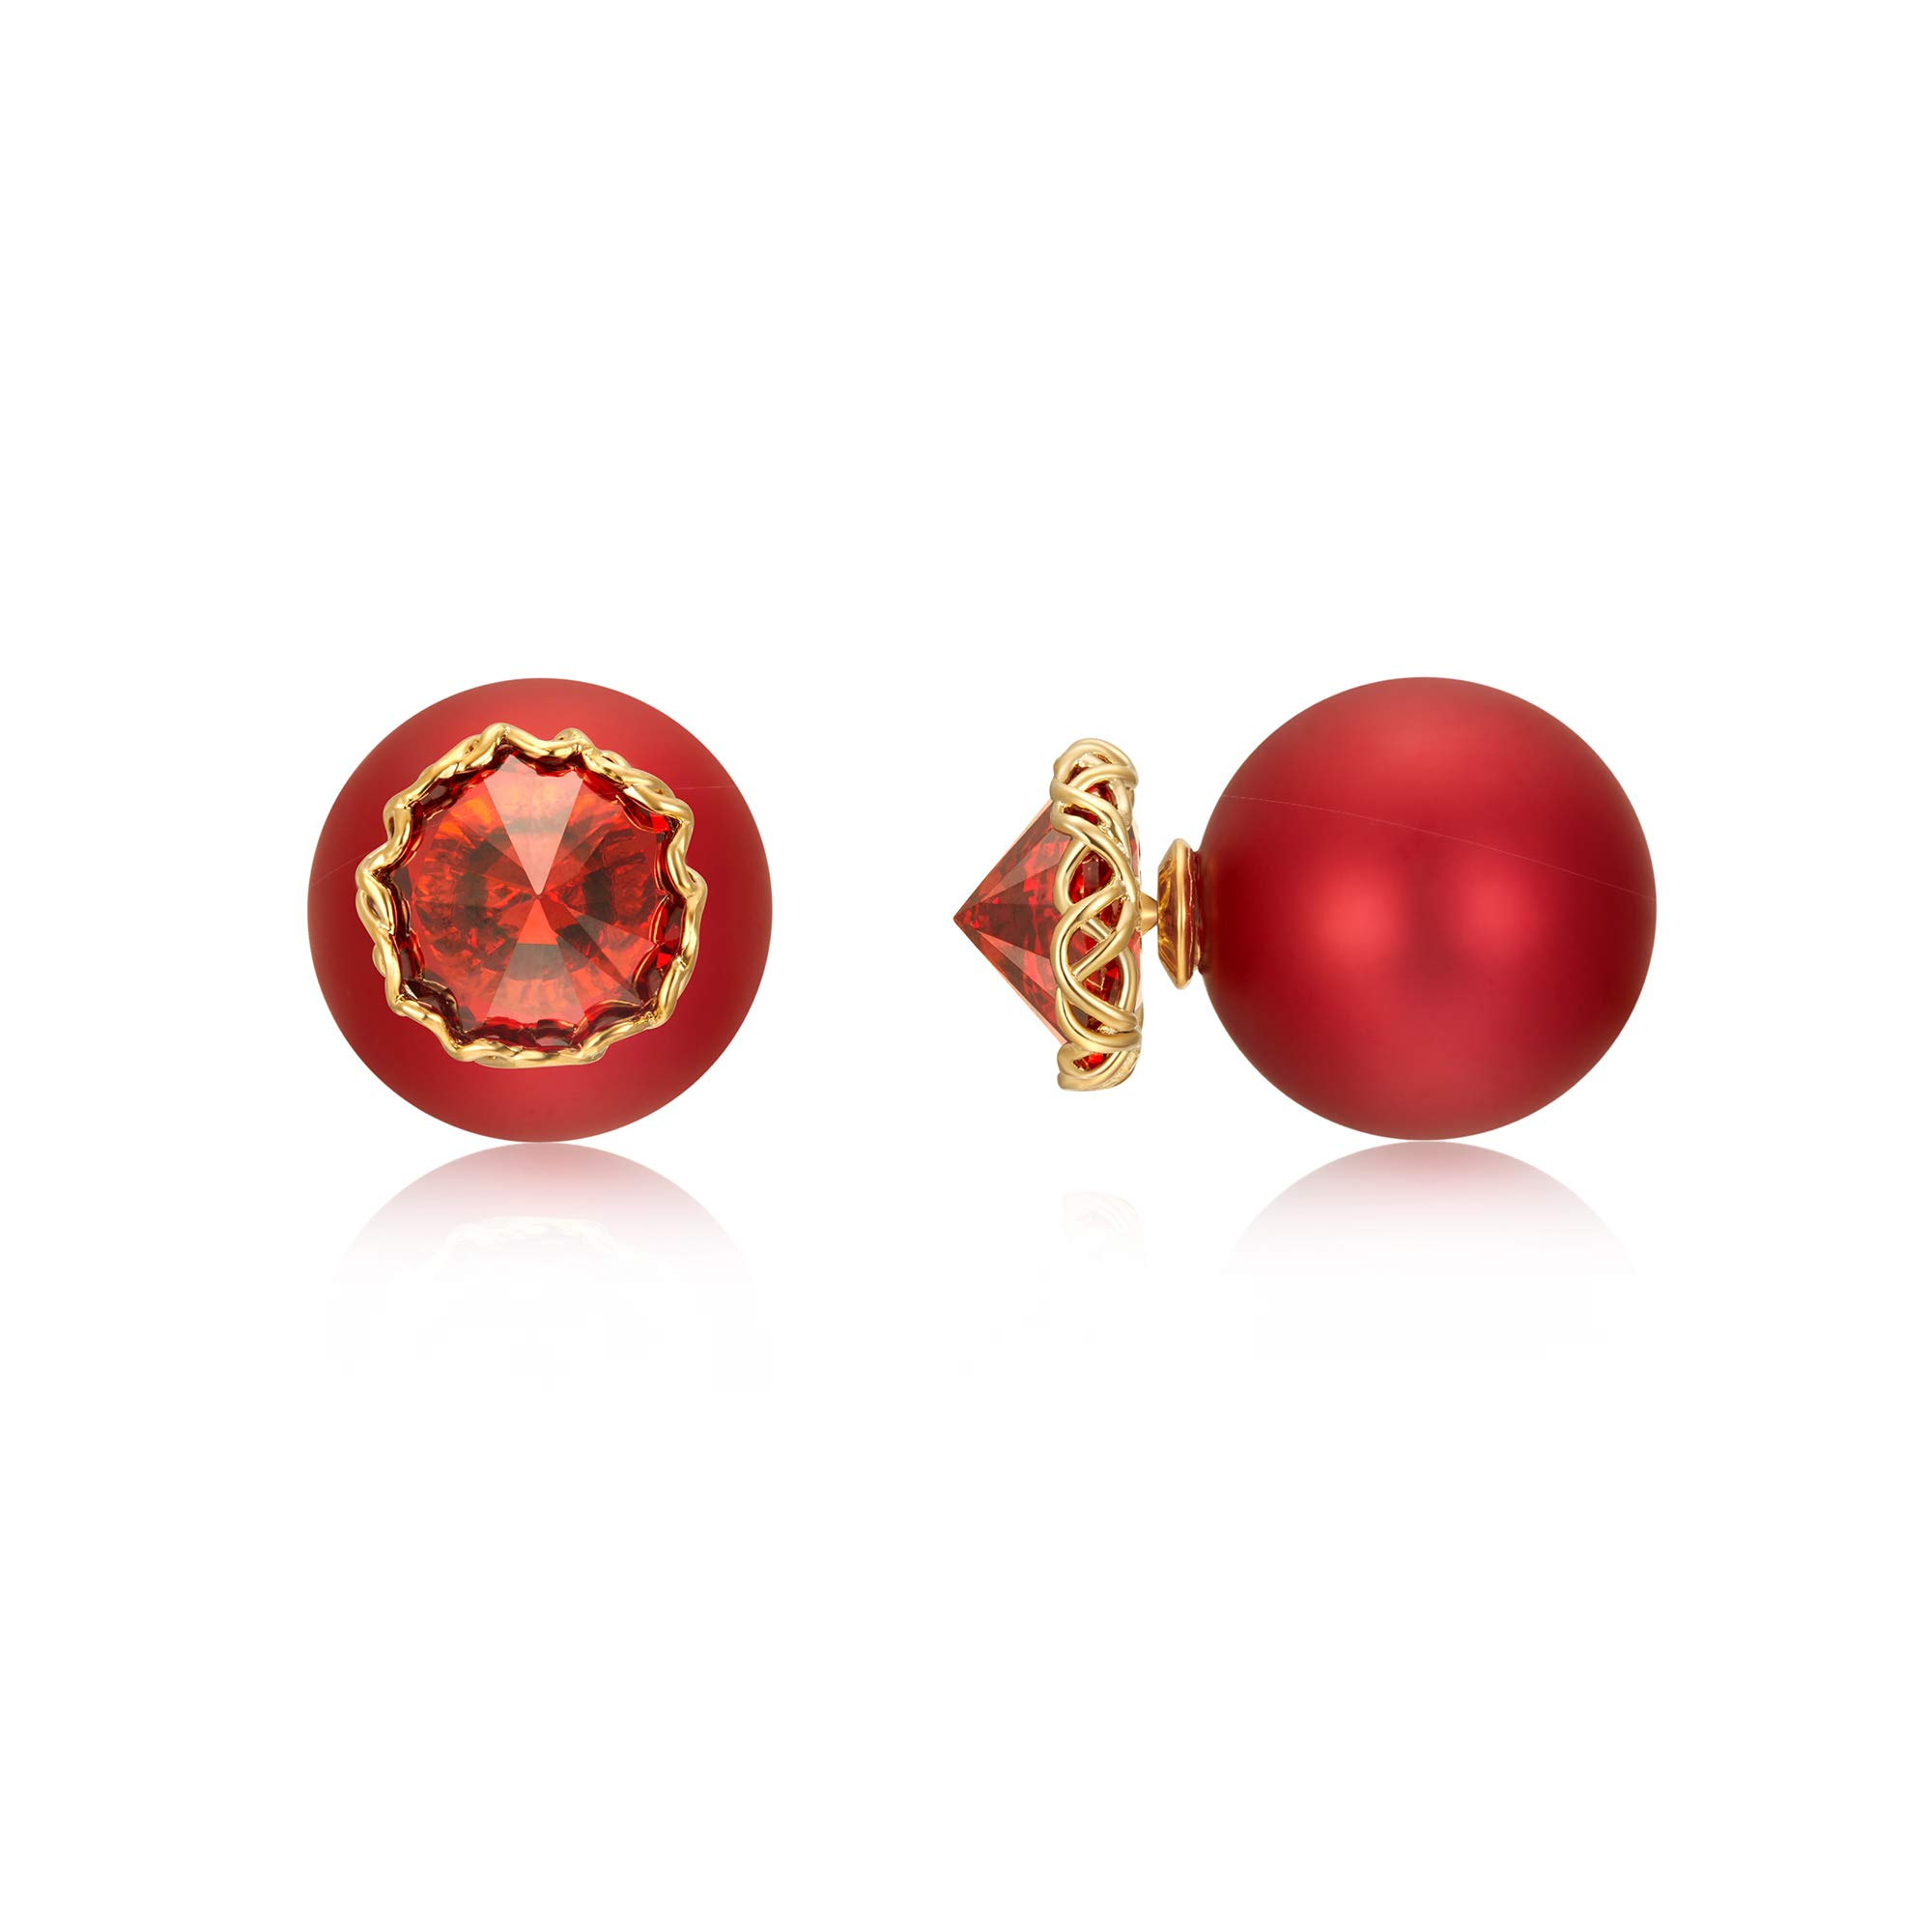 Red Ball Earrings Cubic Zirconia Rhinestones Crystal Snowflake Ball Silver Gold Plated Valentine's Day Special Gifts Red Stud Earrings for Women Girls Jewelry